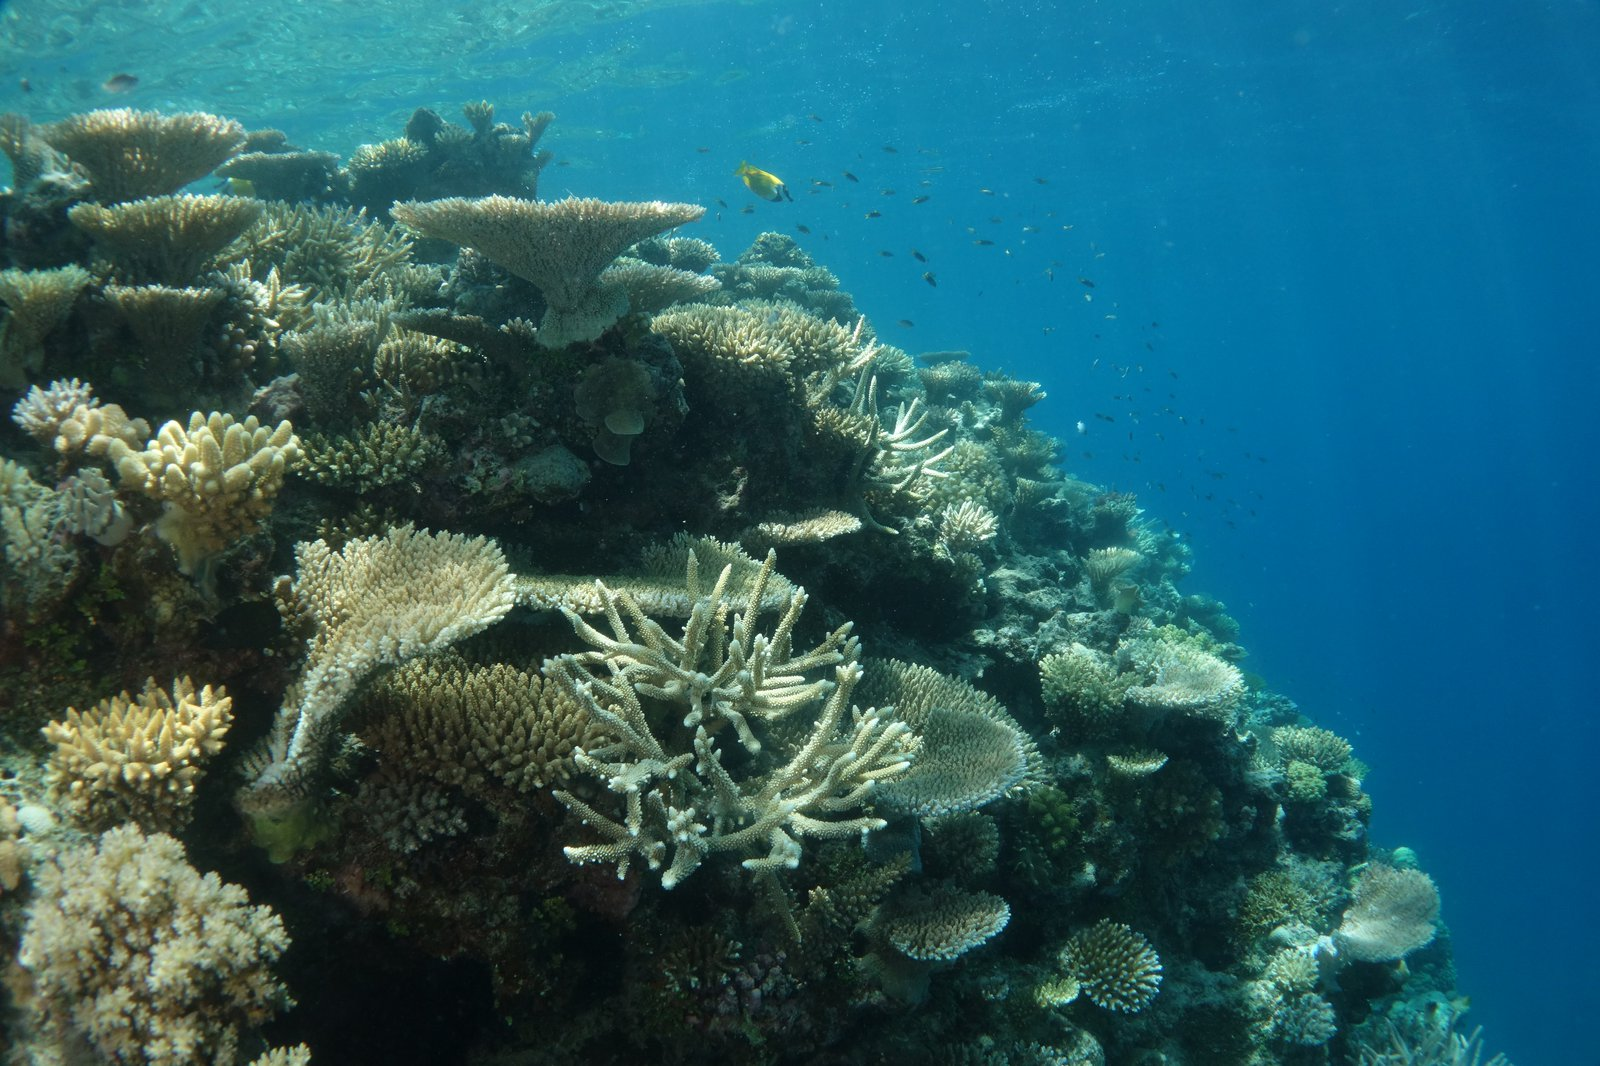 Underwater photograph of the reef at Lizard Island Research Station